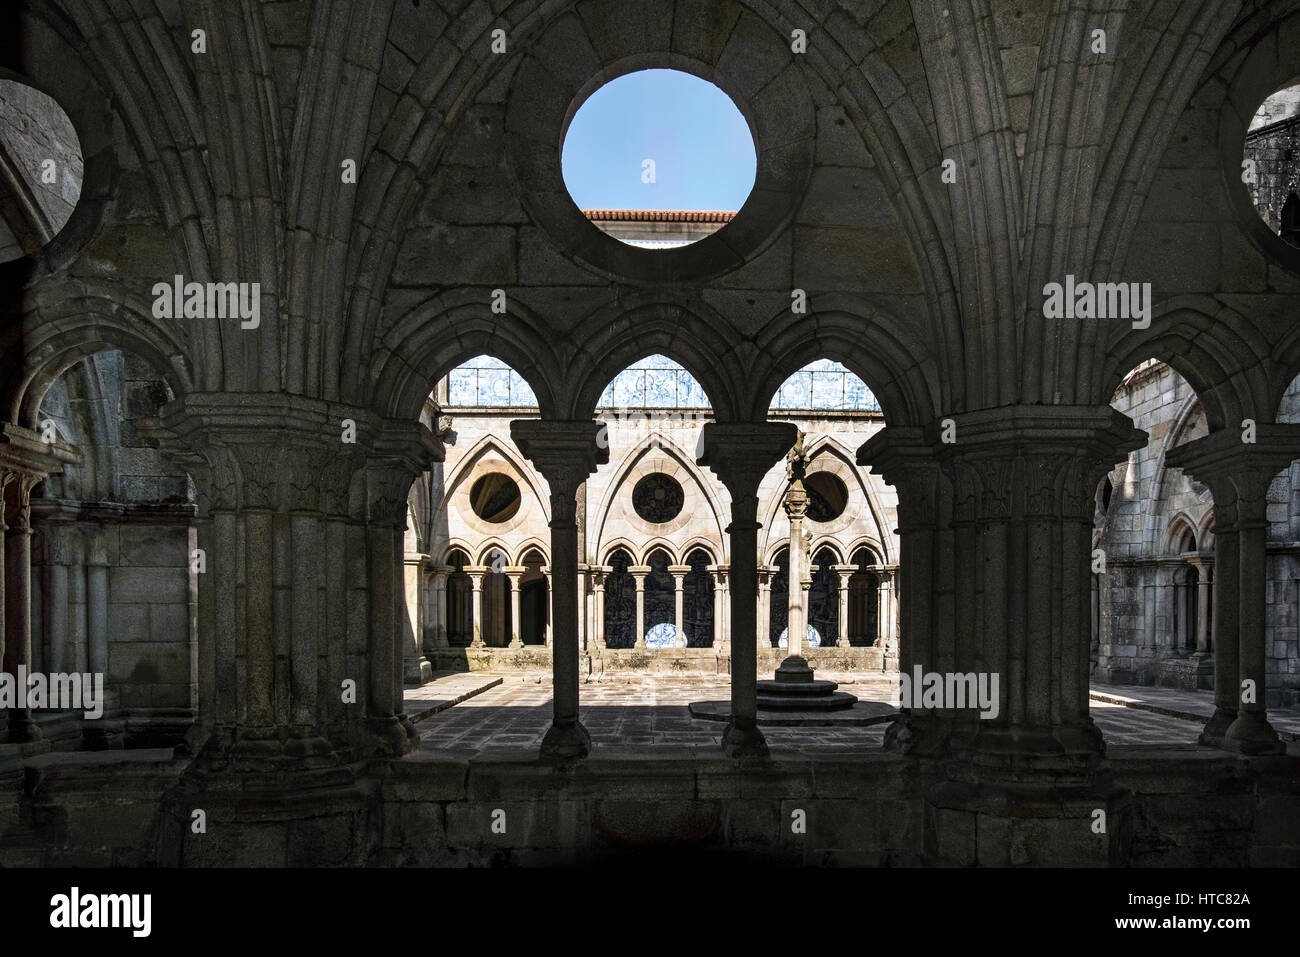 Cloister of Se Cathedral Porto - Stock Image